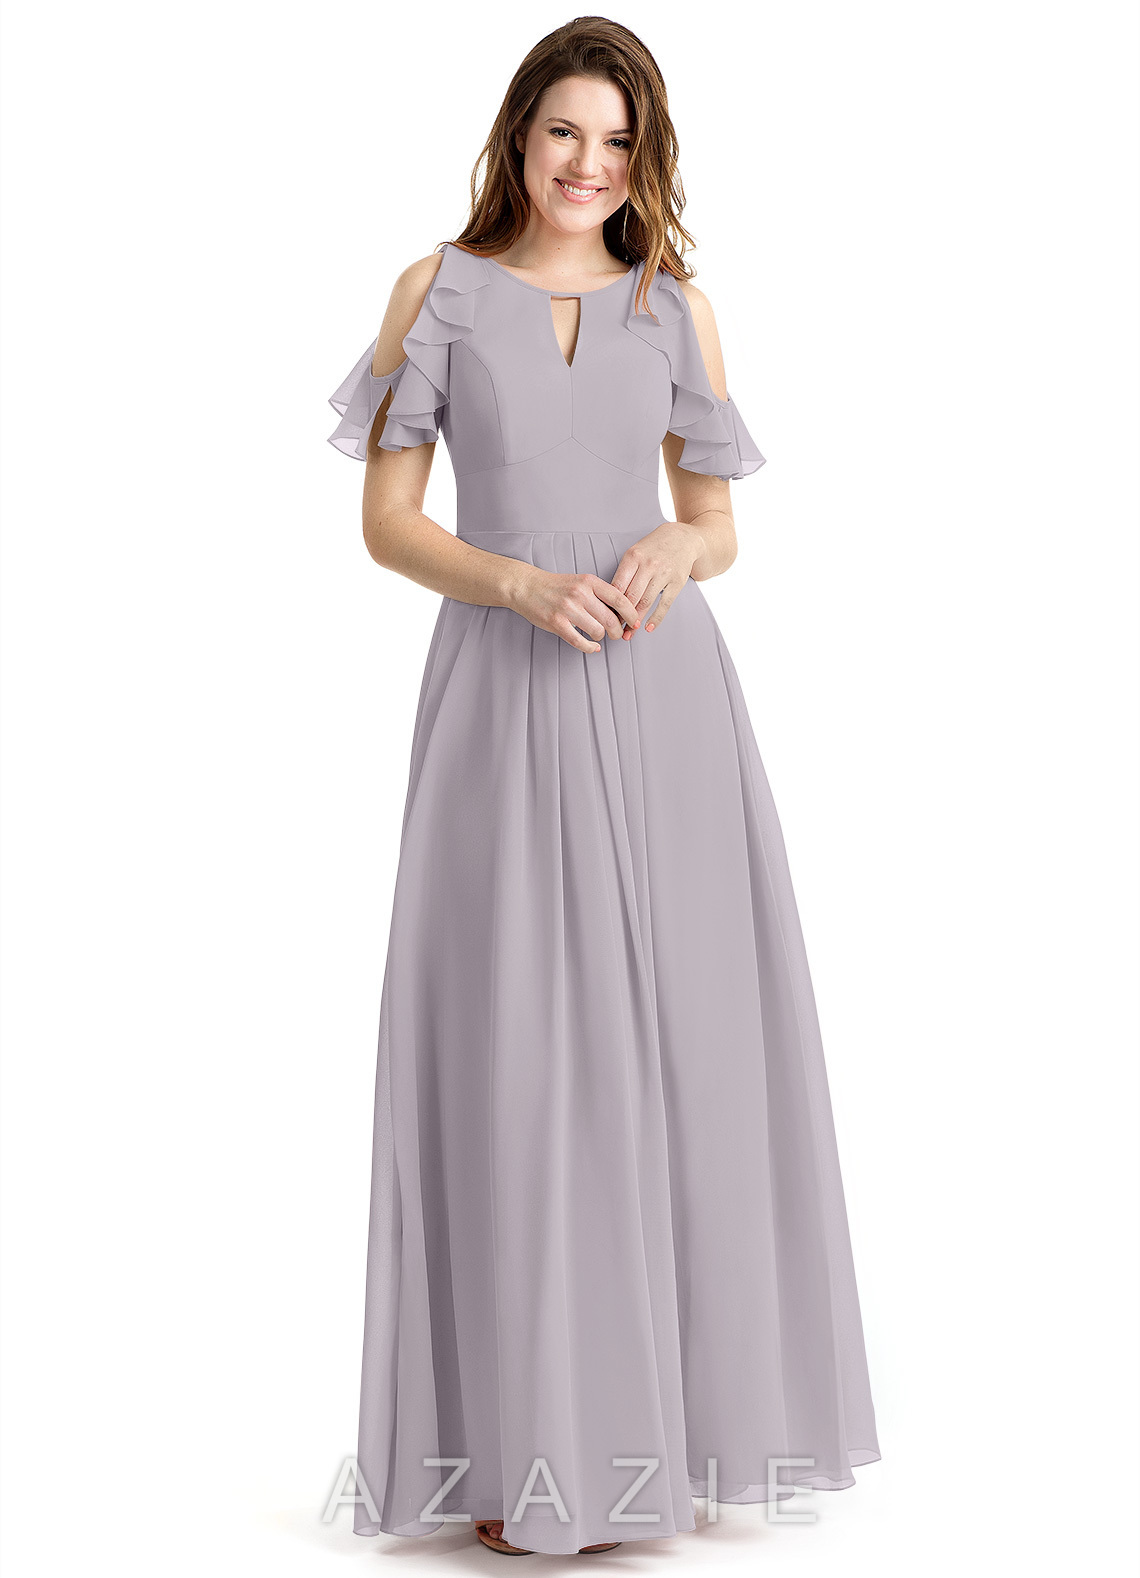 8cd54c77d4b41 Azazie Logan Bridesmaid Dress | Azazie